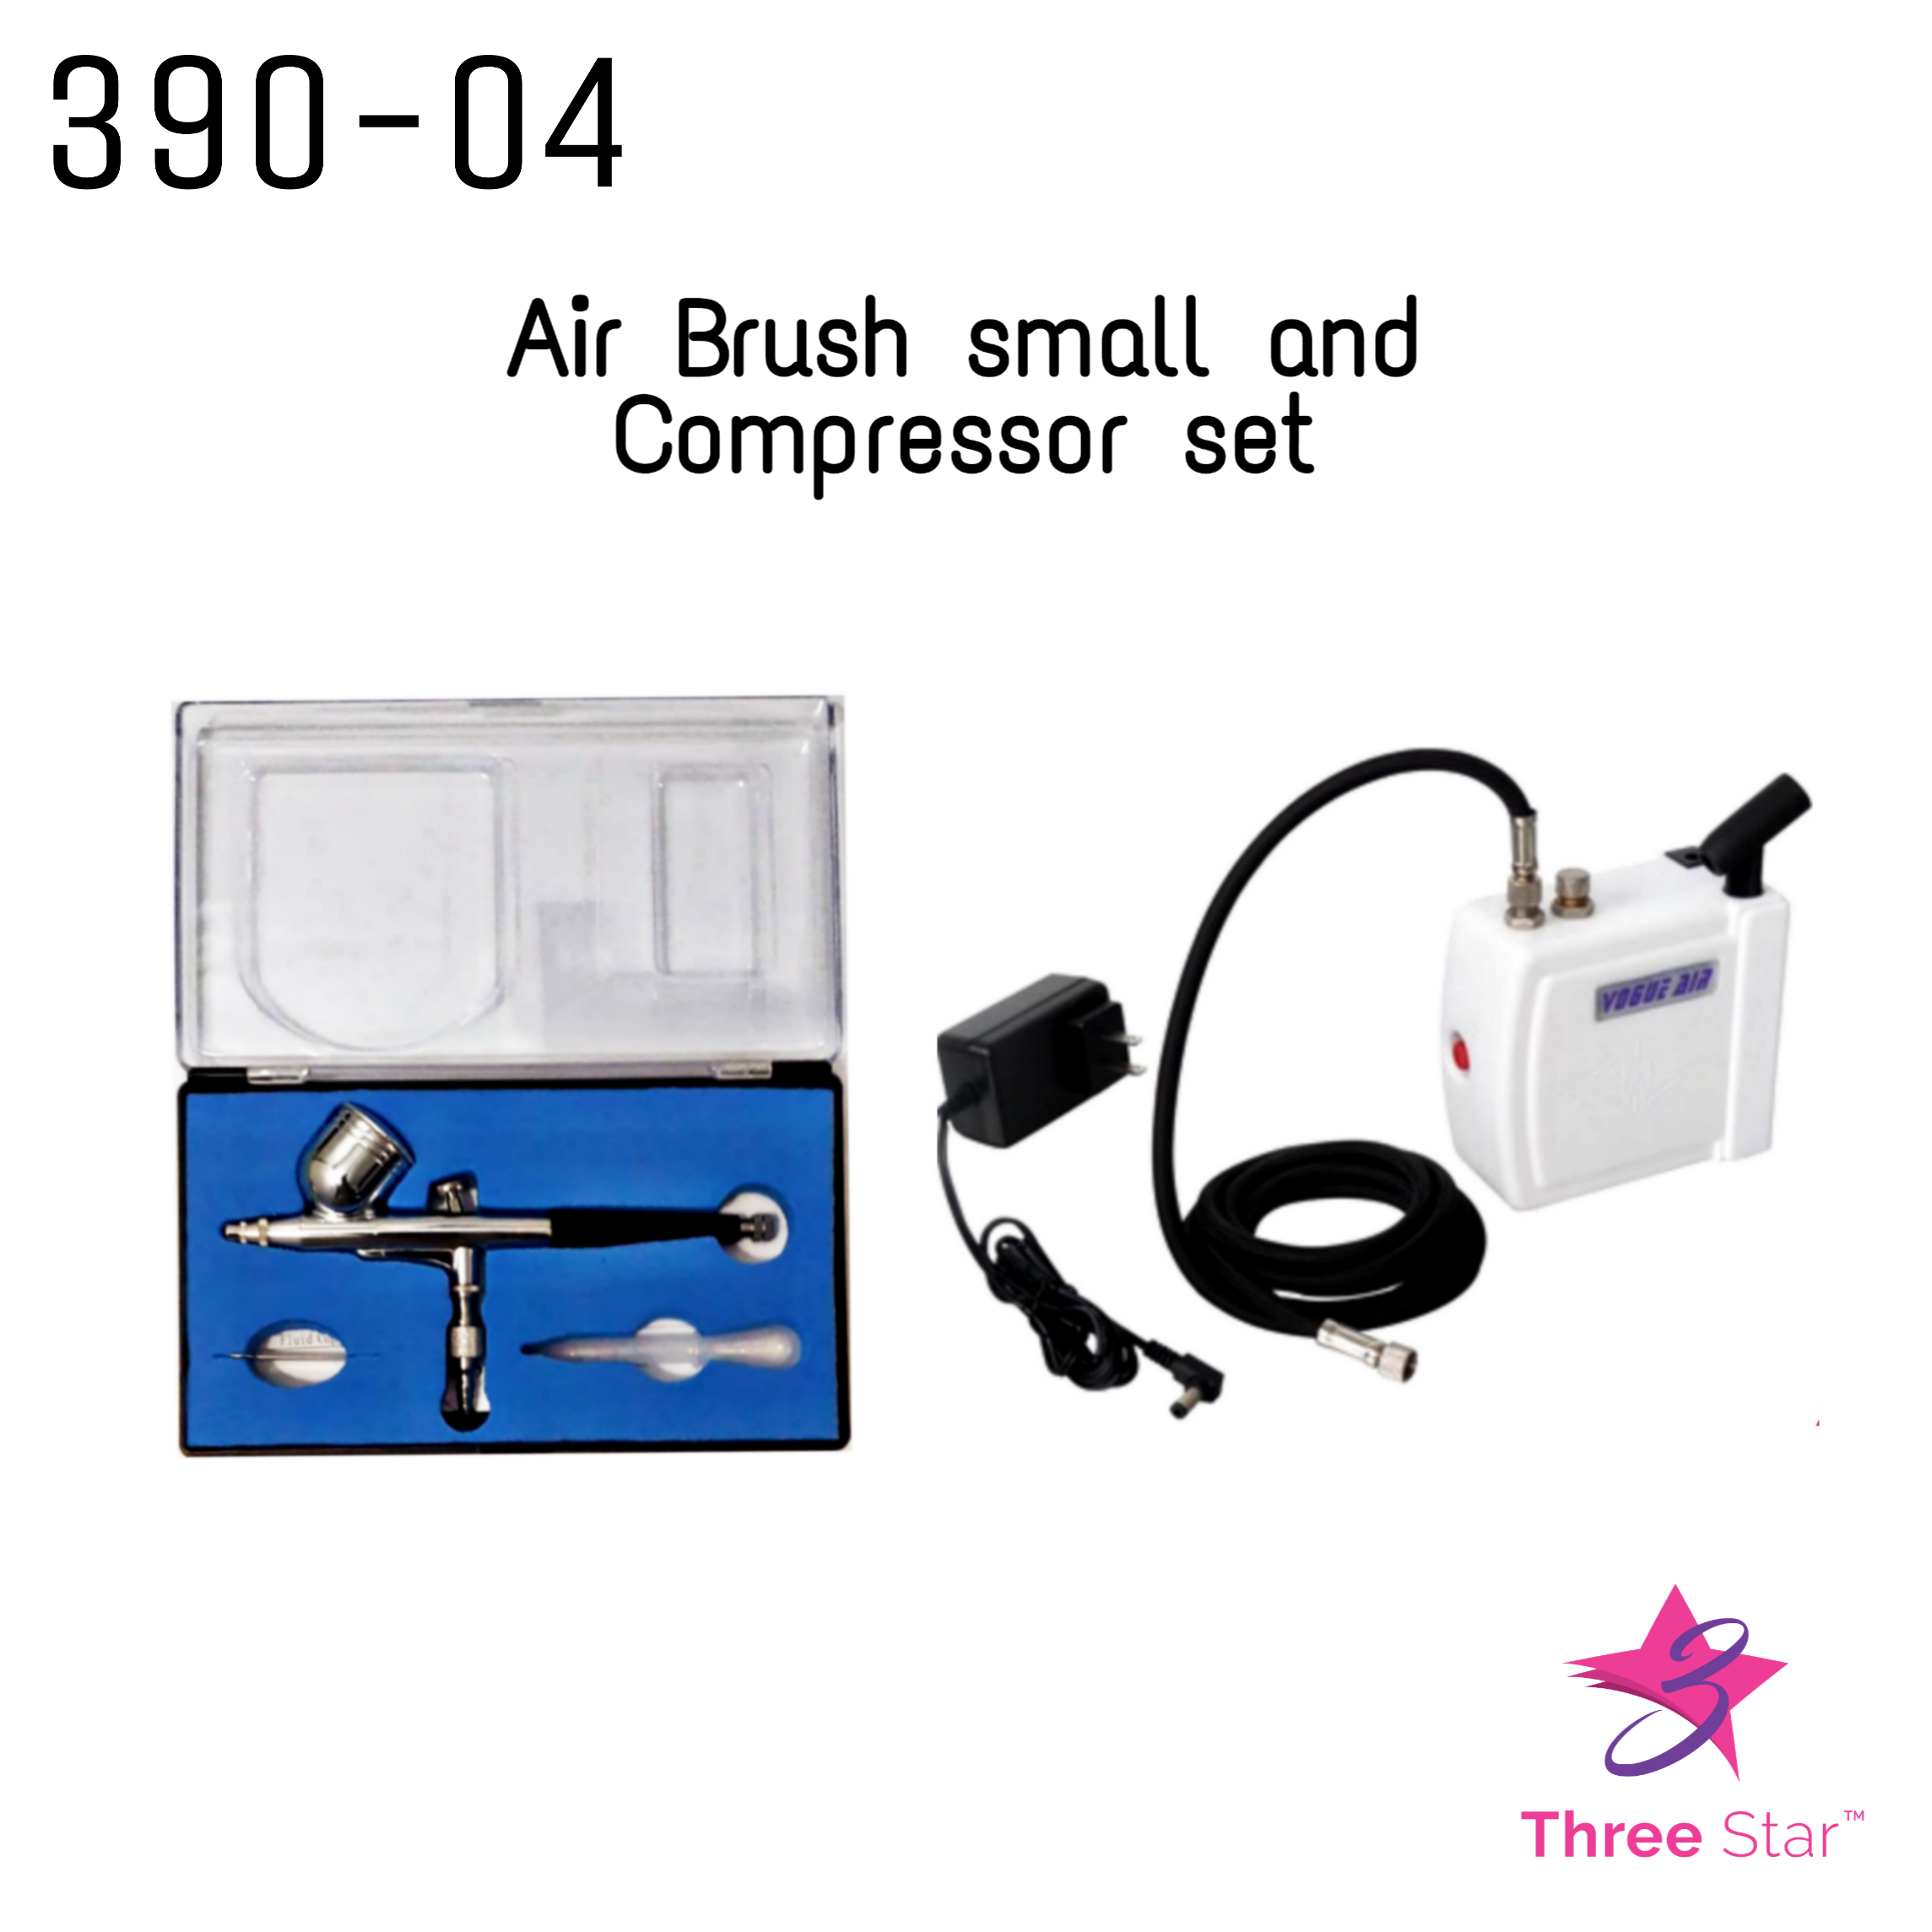 Air Brush Small and Compressor set